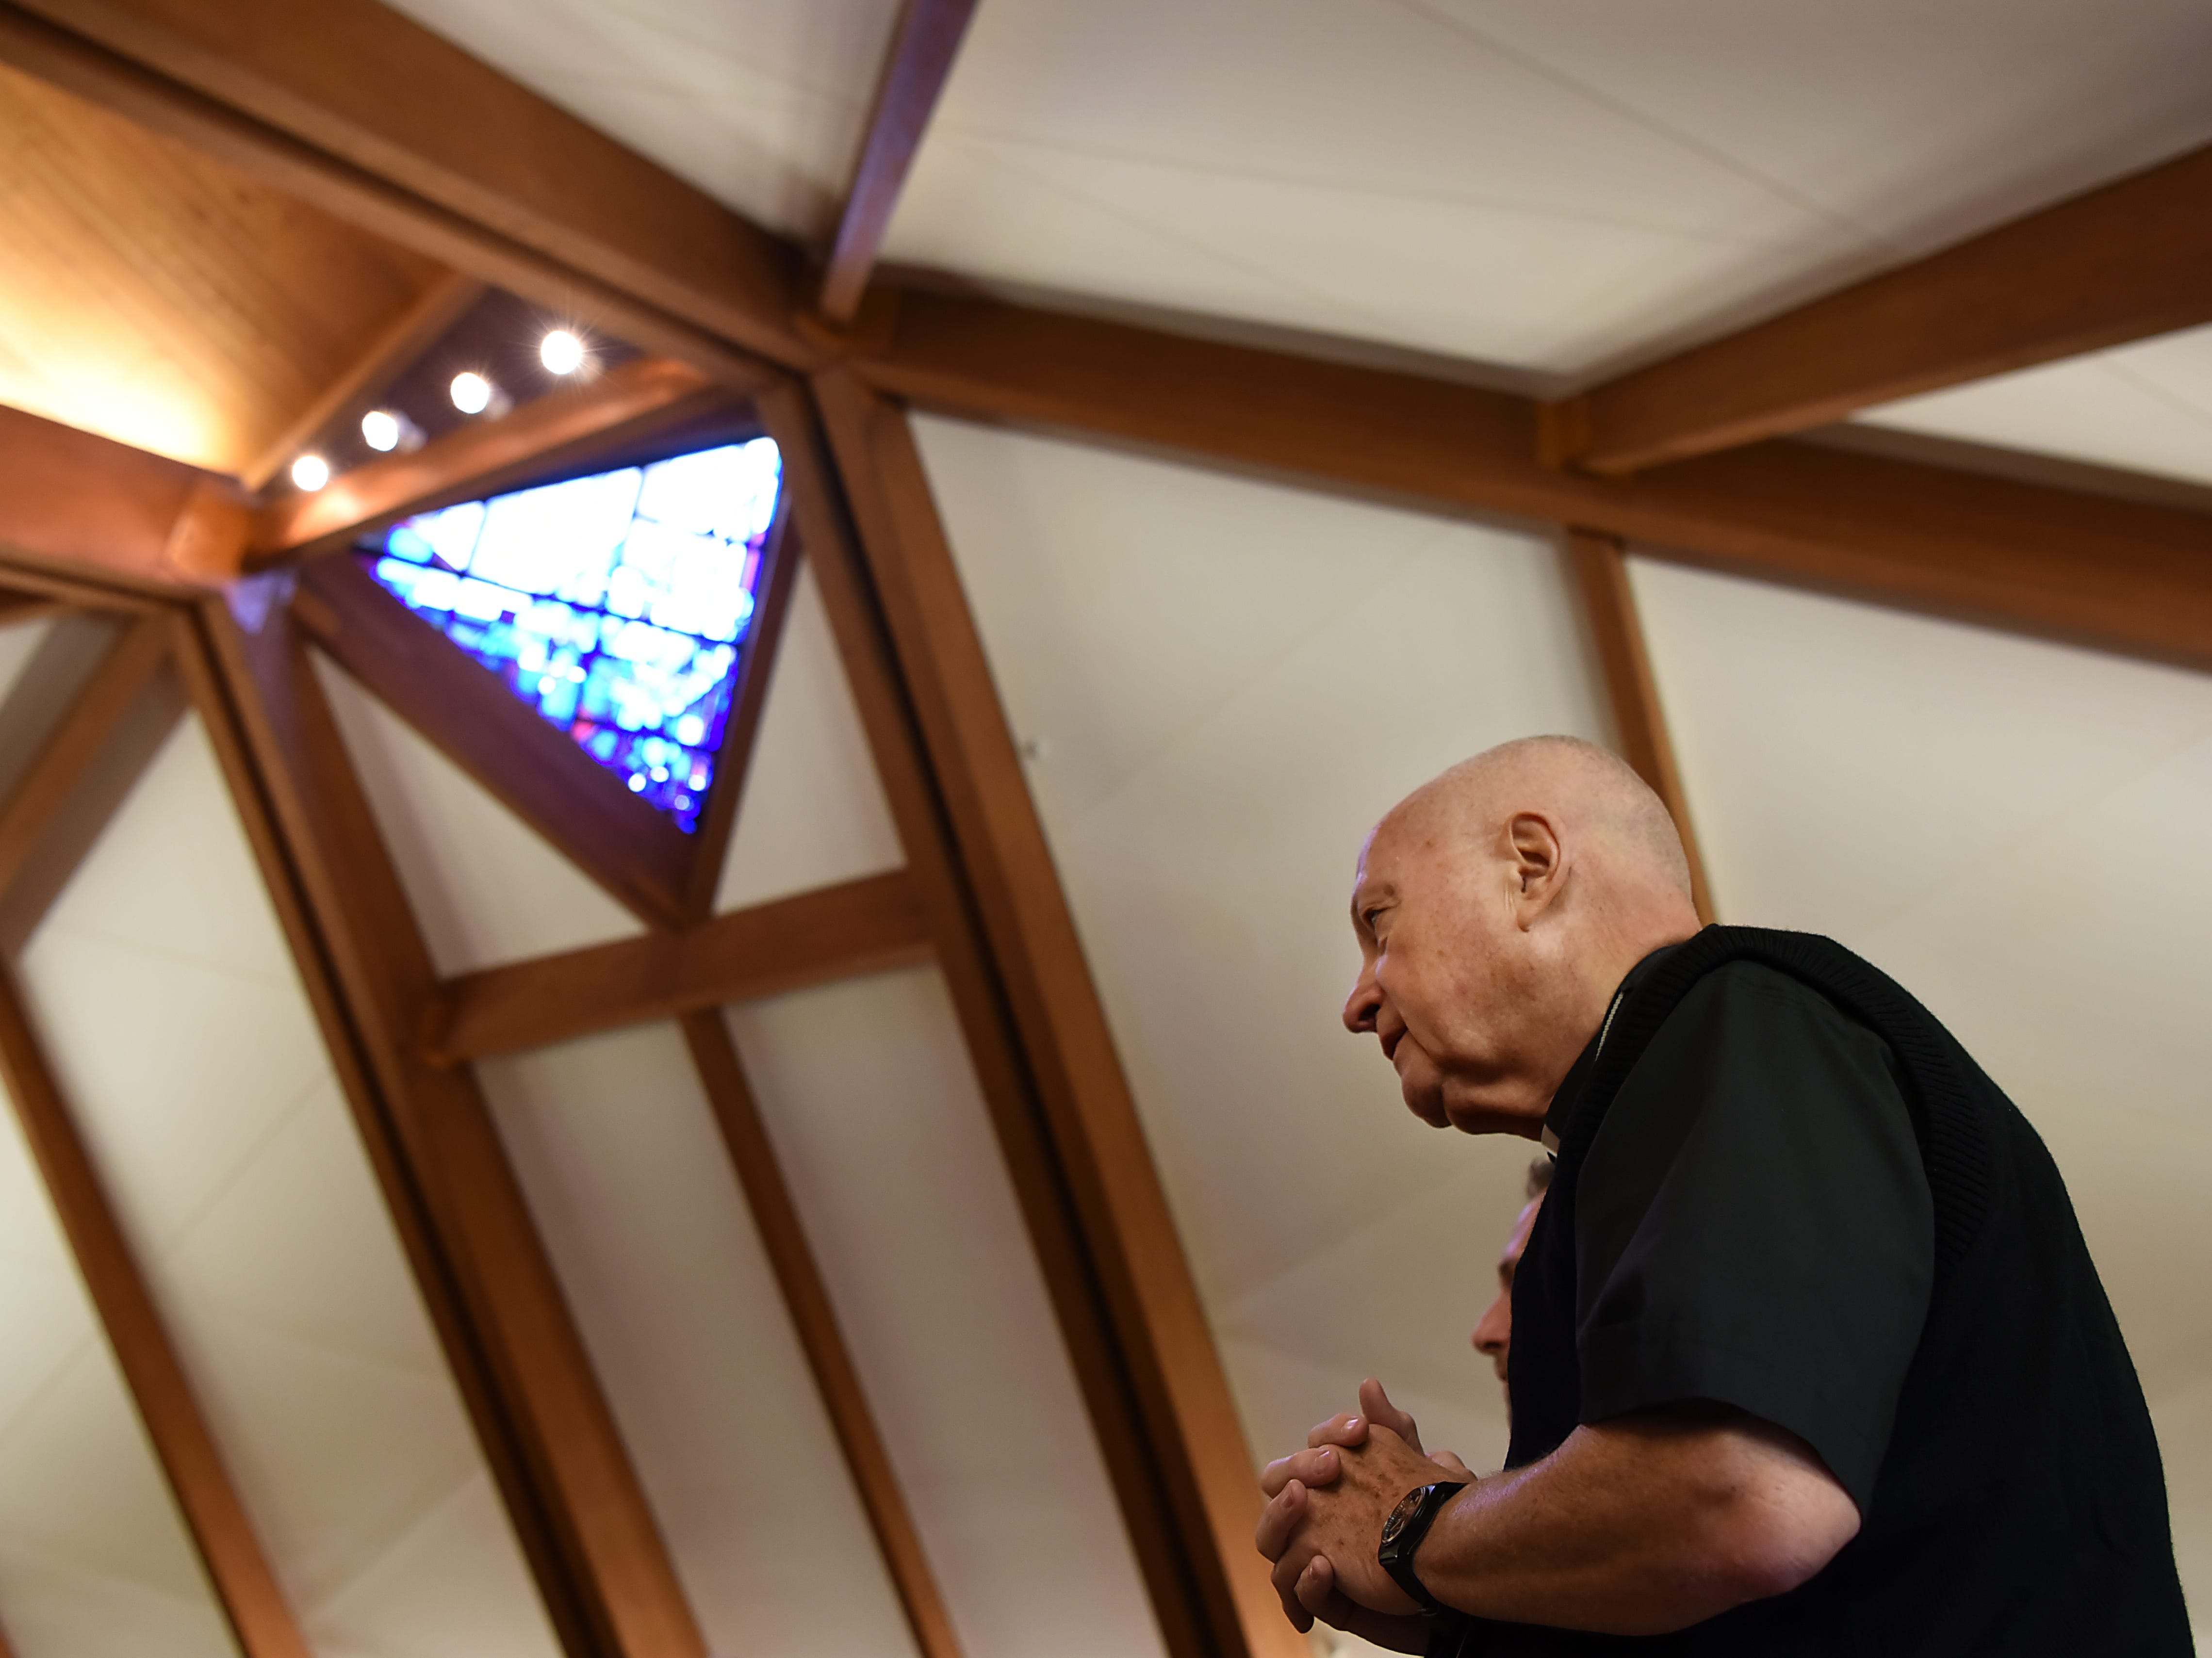 The Straight and Narrow Choir performs at Our Lady of the Magnificat Church in Kinnelon on Sunday September 23, 2018. Father Bill Naughton clasps his hands together in prayer during the mass.